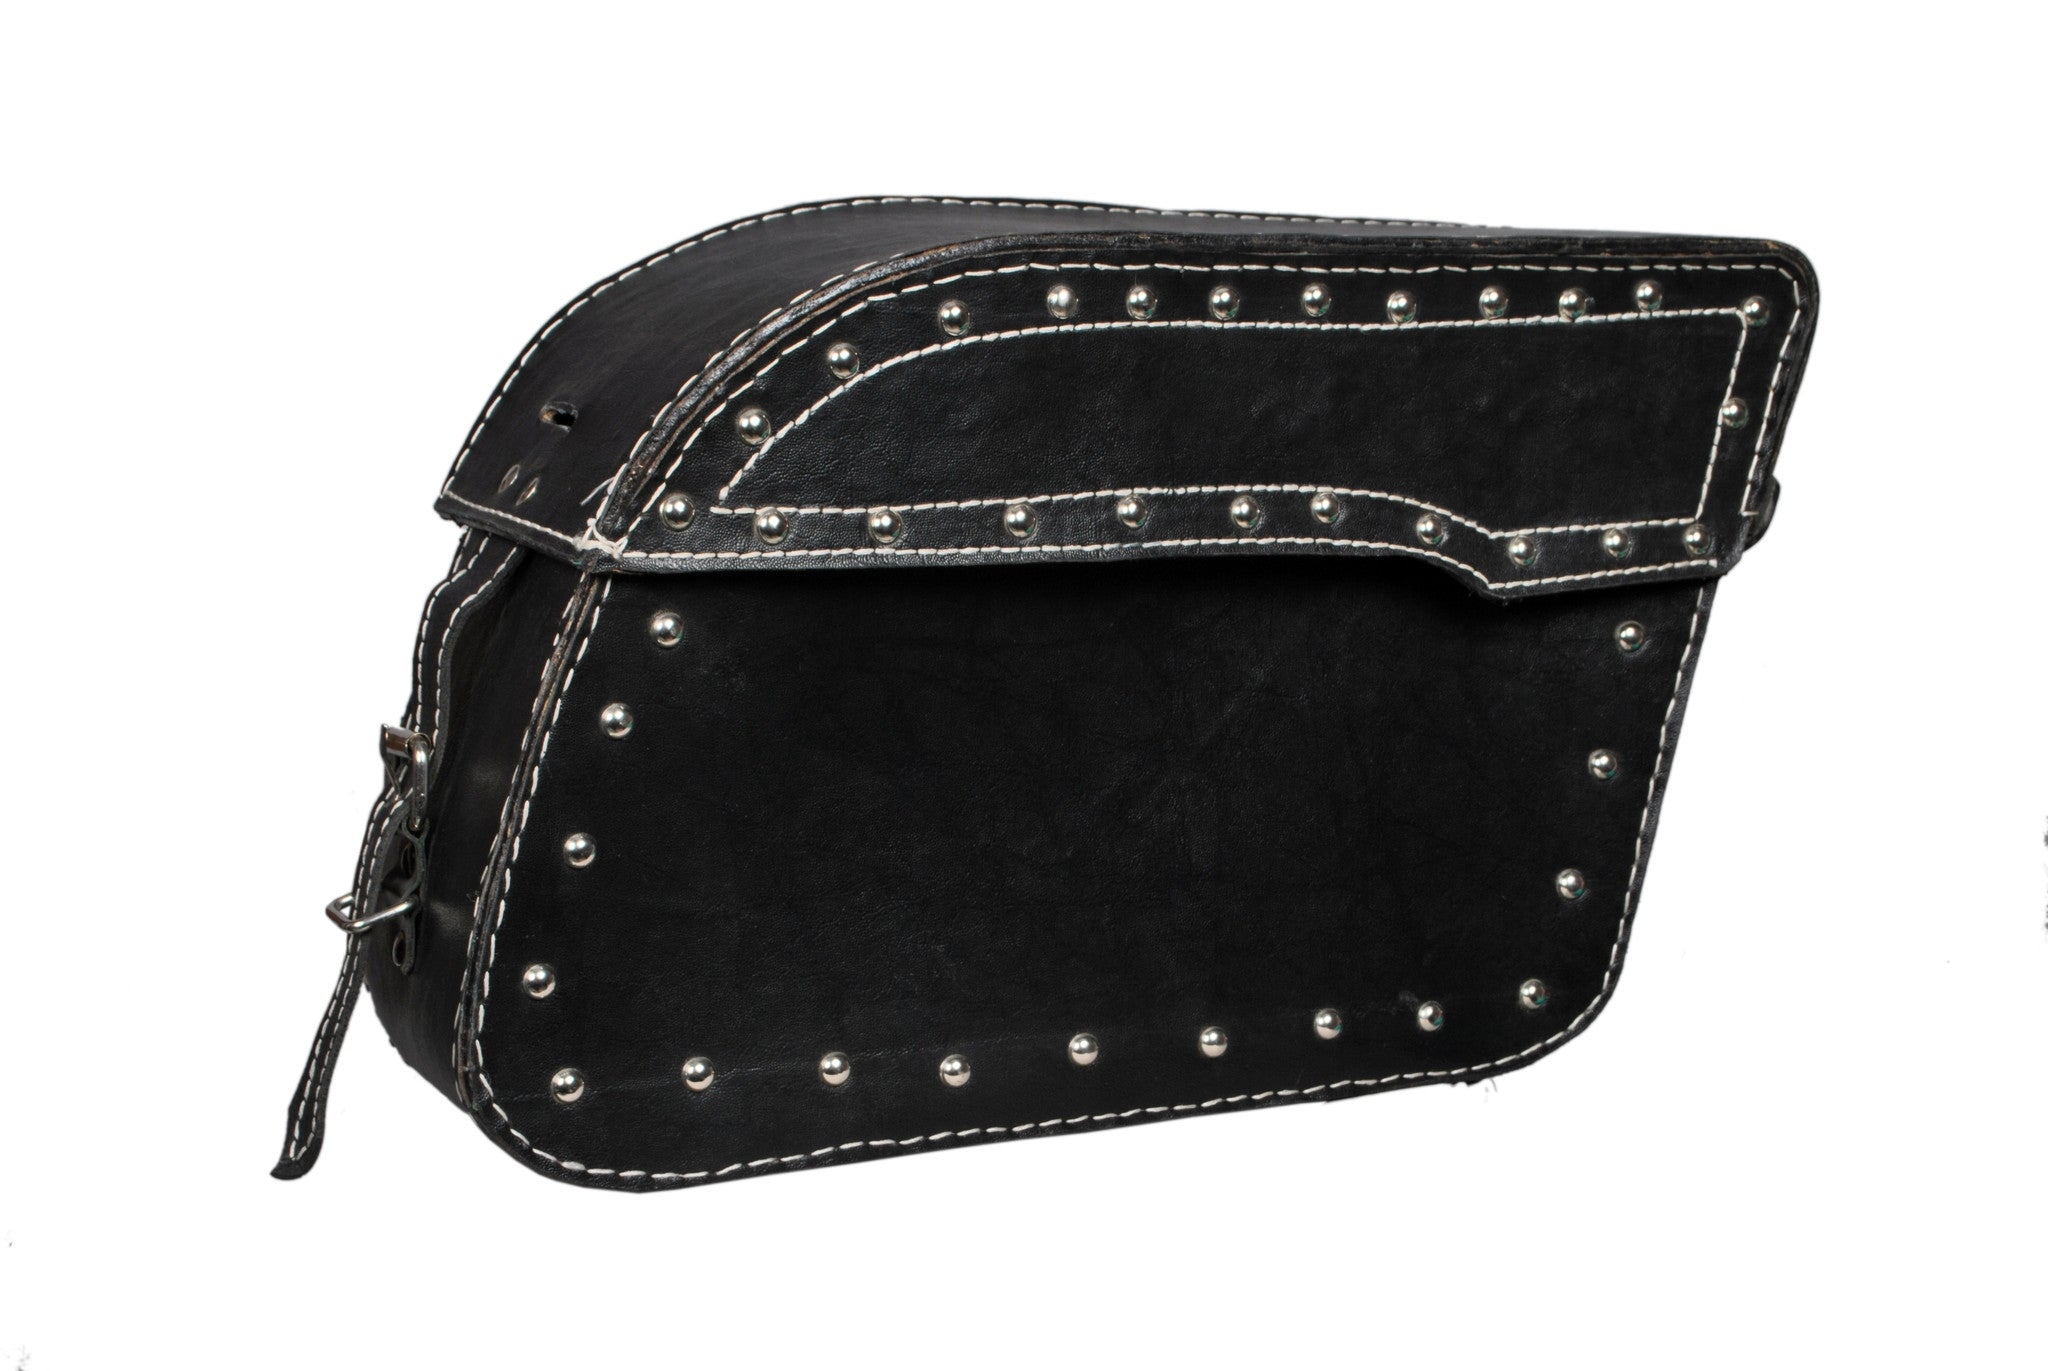 Black Studded Flap Saddlebag 1 Buckle Leather AFREZ-5004